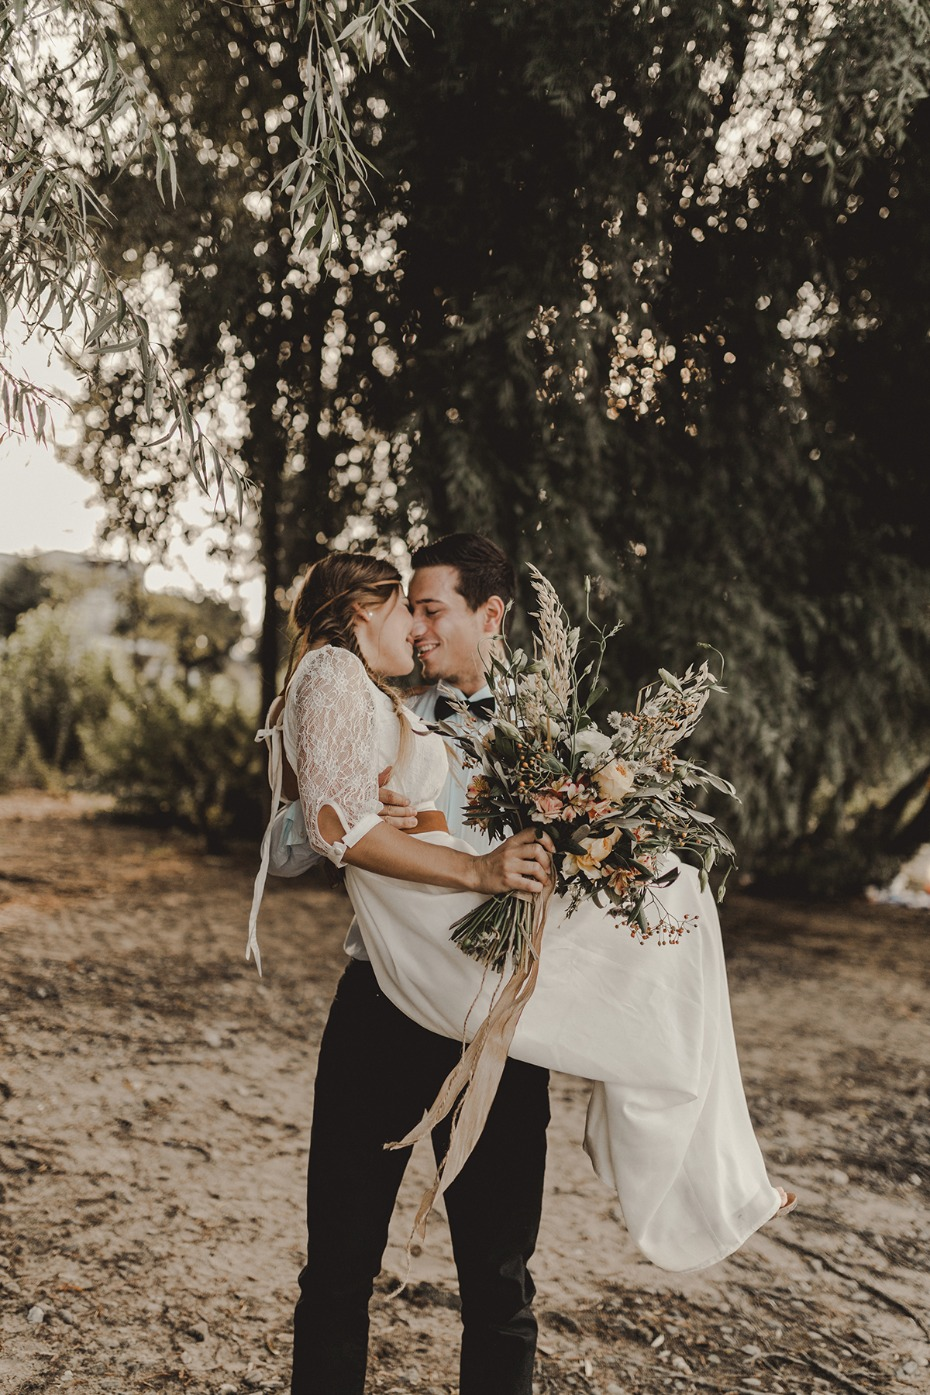 Elopement wedding ideas from simple to planned out.